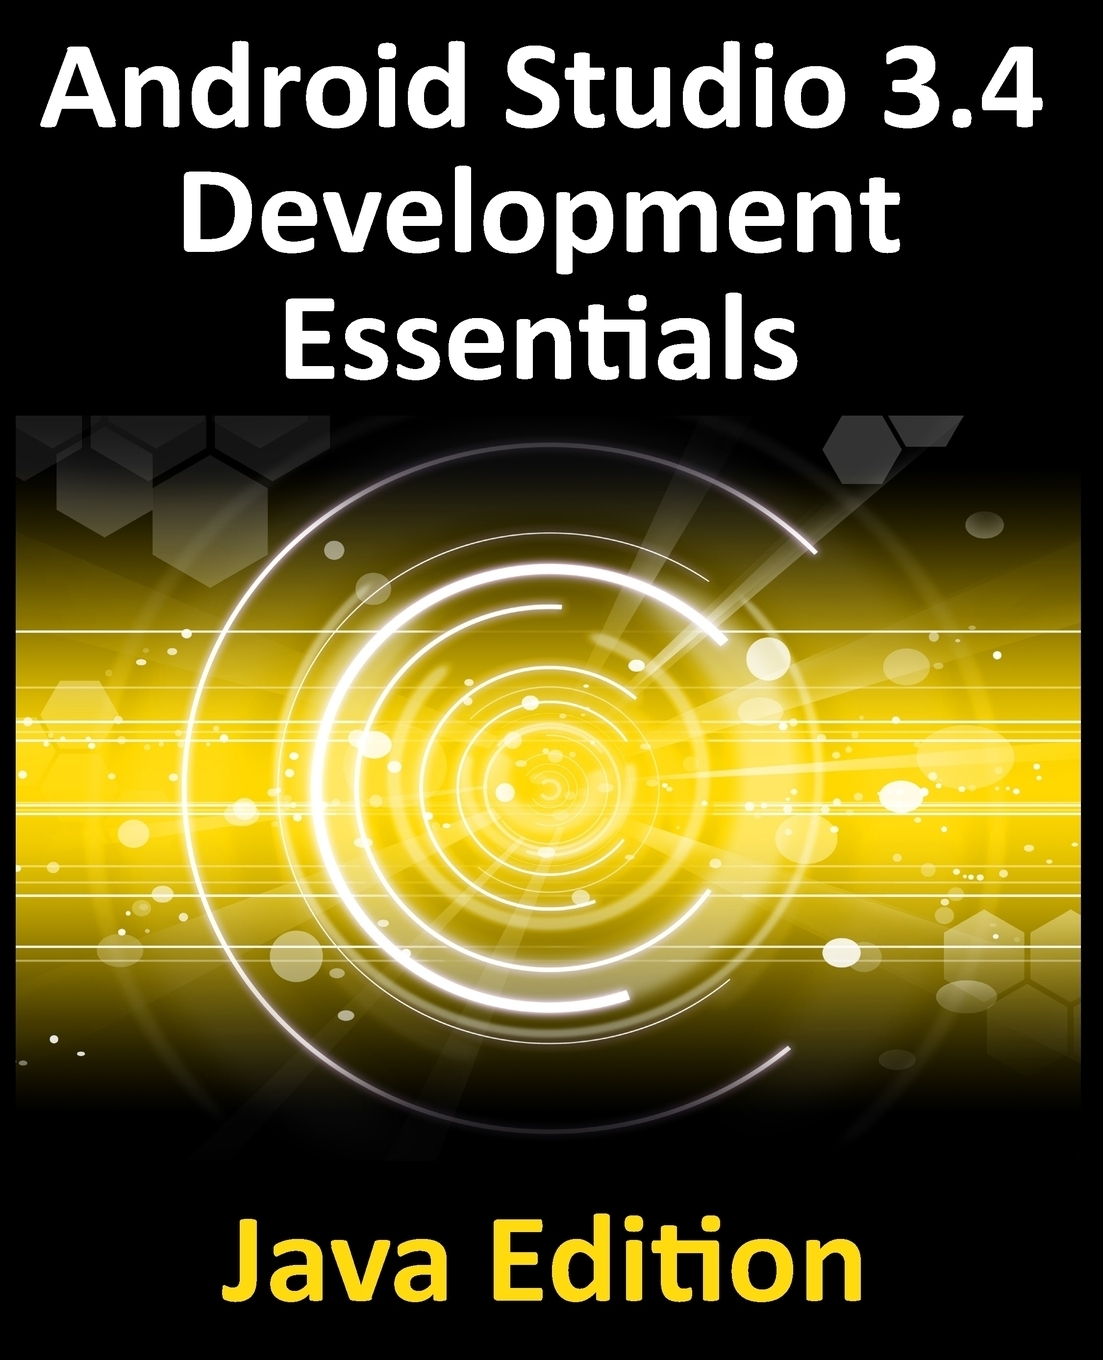 Neil Smyth Android Studio 3.4 Development Essentials - Java Edition. Developing Android 9 Apps Using Android Studio 3.4, Java and Android Jetpack книга android studio